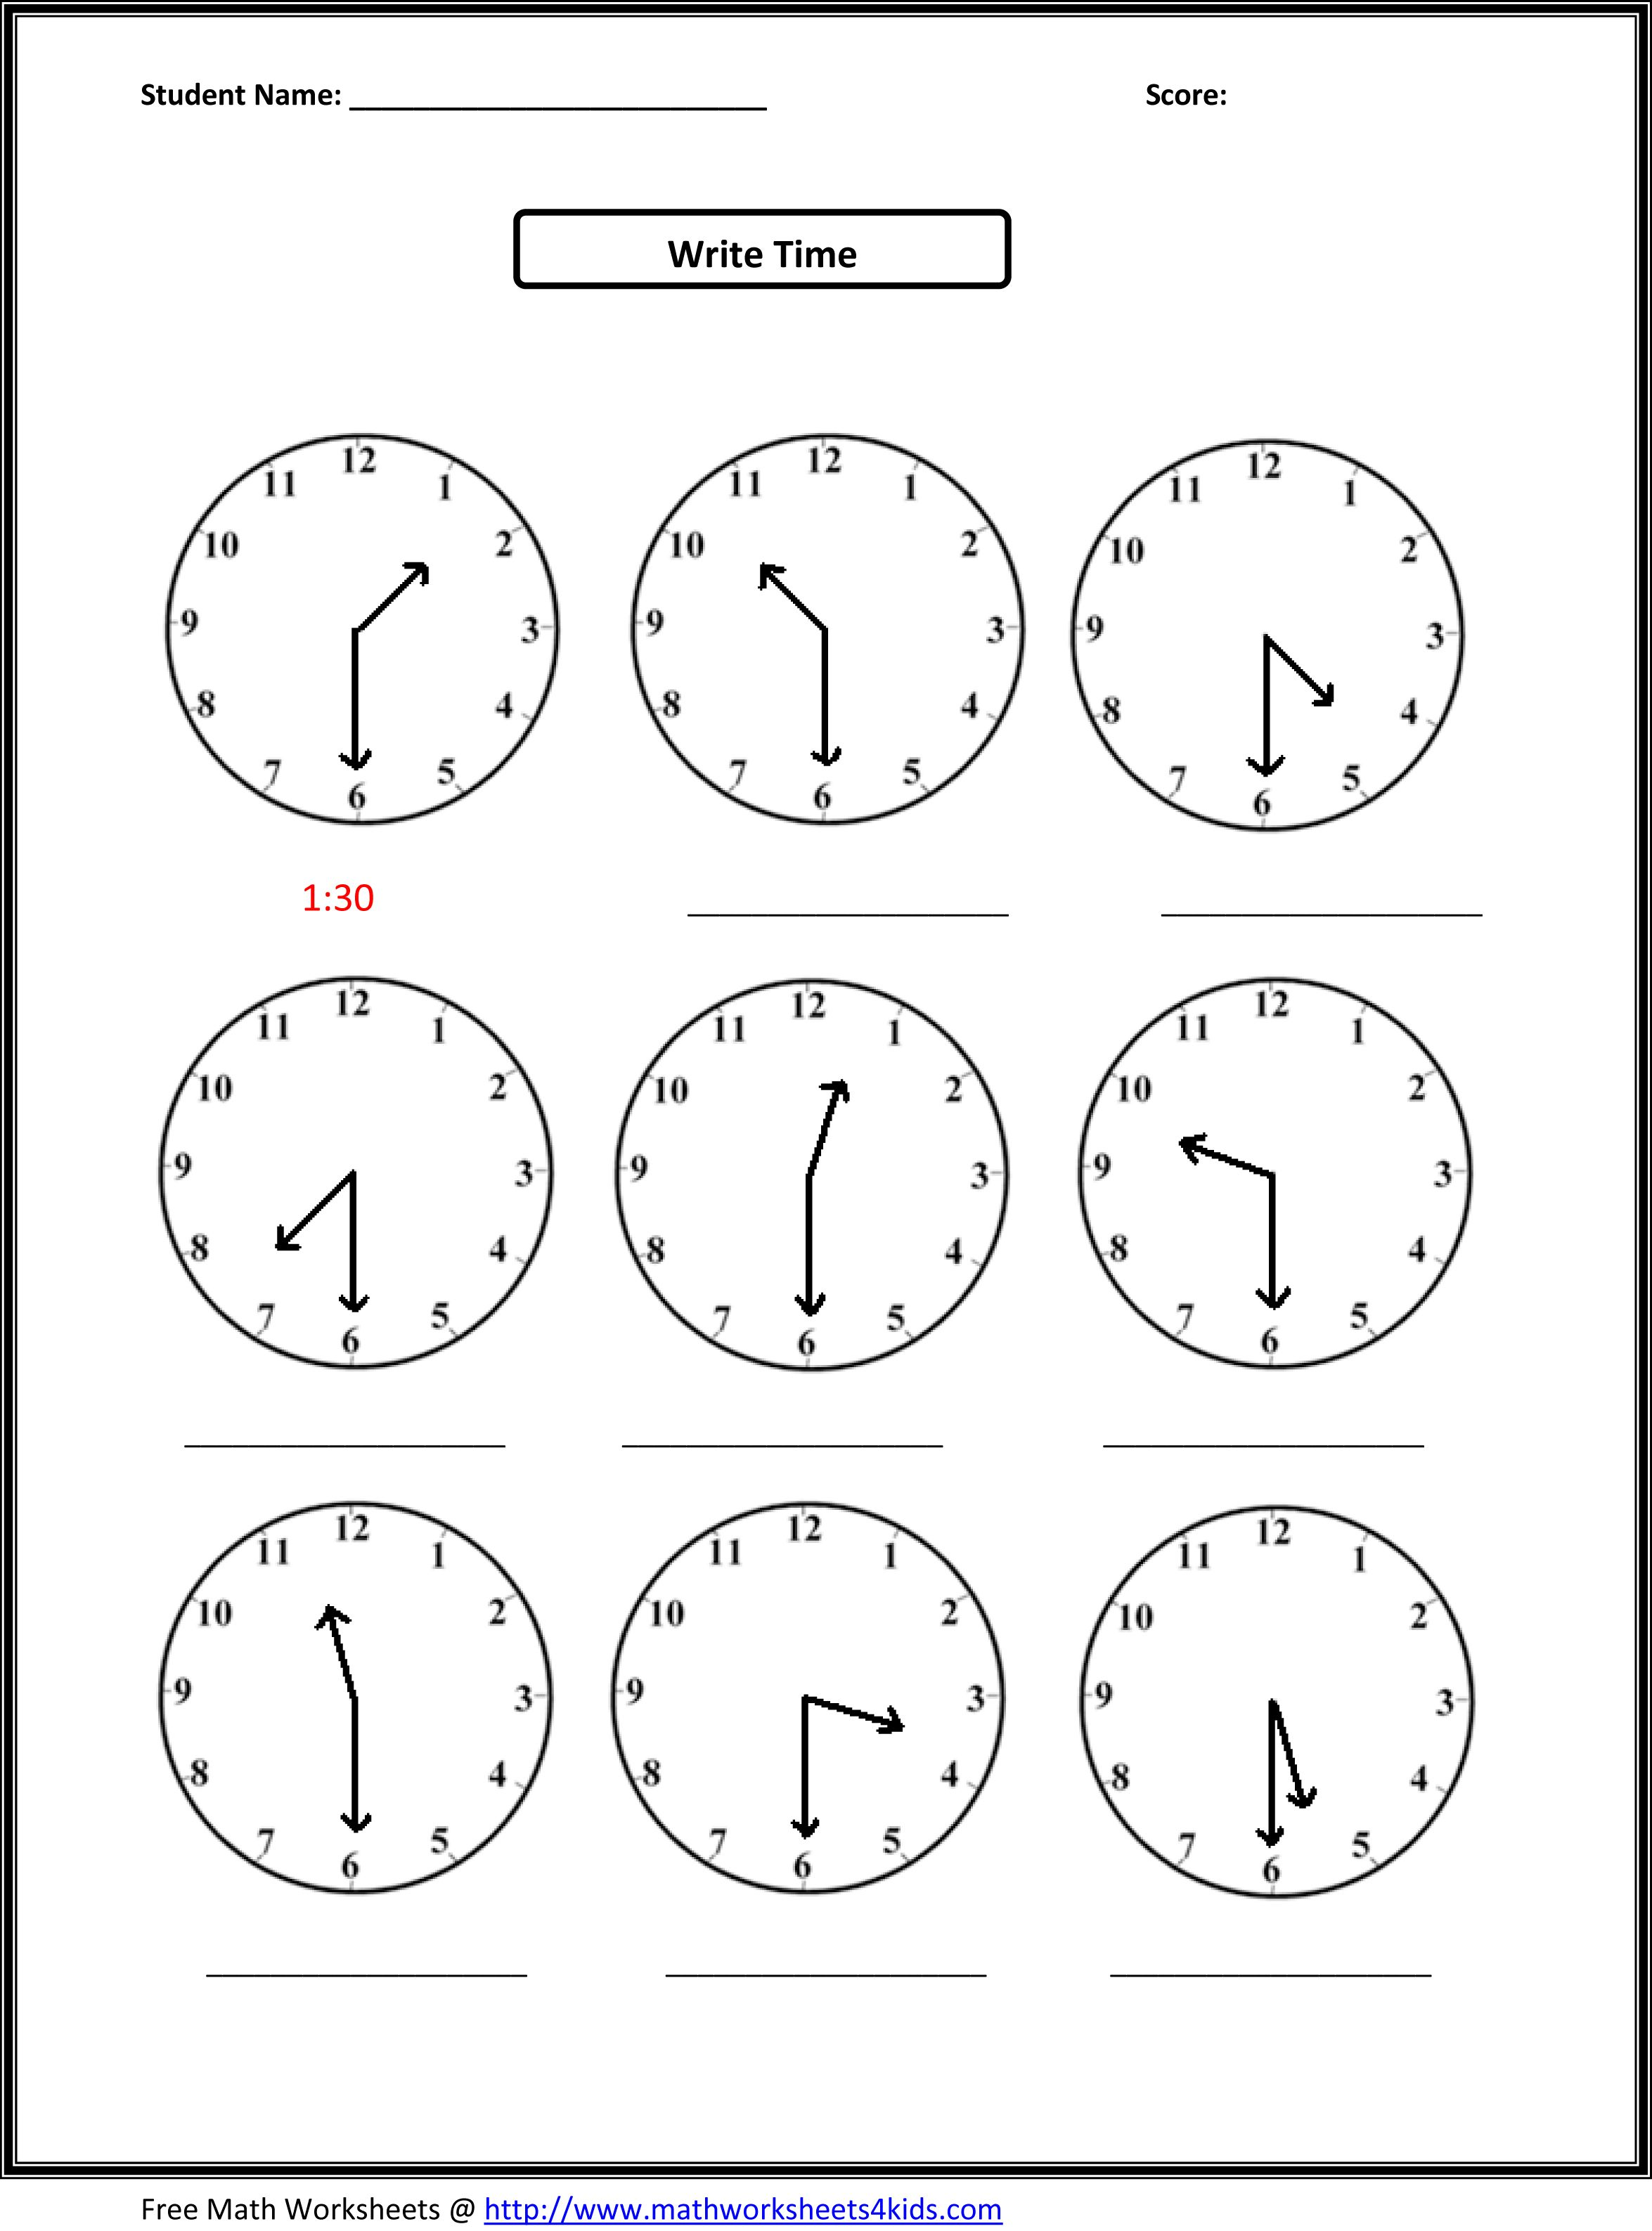 Proatmealus  Prepossessing Worksheet On Time For Grade   Reocurent With Remarkable Free Printable Telling Time Worksheets Nd Grade  Reocurent With Comely Fill In The Blank Vocabulary Worksheet Also The Help Movie Worksheet In Addition Grammar Worksheets With Answers And Separation Worksheet As Well As Rth Grade Worksheets Additionally Identify Main Idea Worksheet From Reocurentcom With Proatmealus  Remarkable Worksheet On Time For Grade   Reocurent With Comely Free Printable Telling Time Worksheets Nd Grade  Reocurent And Prepossessing Fill In The Blank Vocabulary Worksheet Also The Help Movie Worksheet In Addition Grammar Worksheets With Answers From Reocurentcom